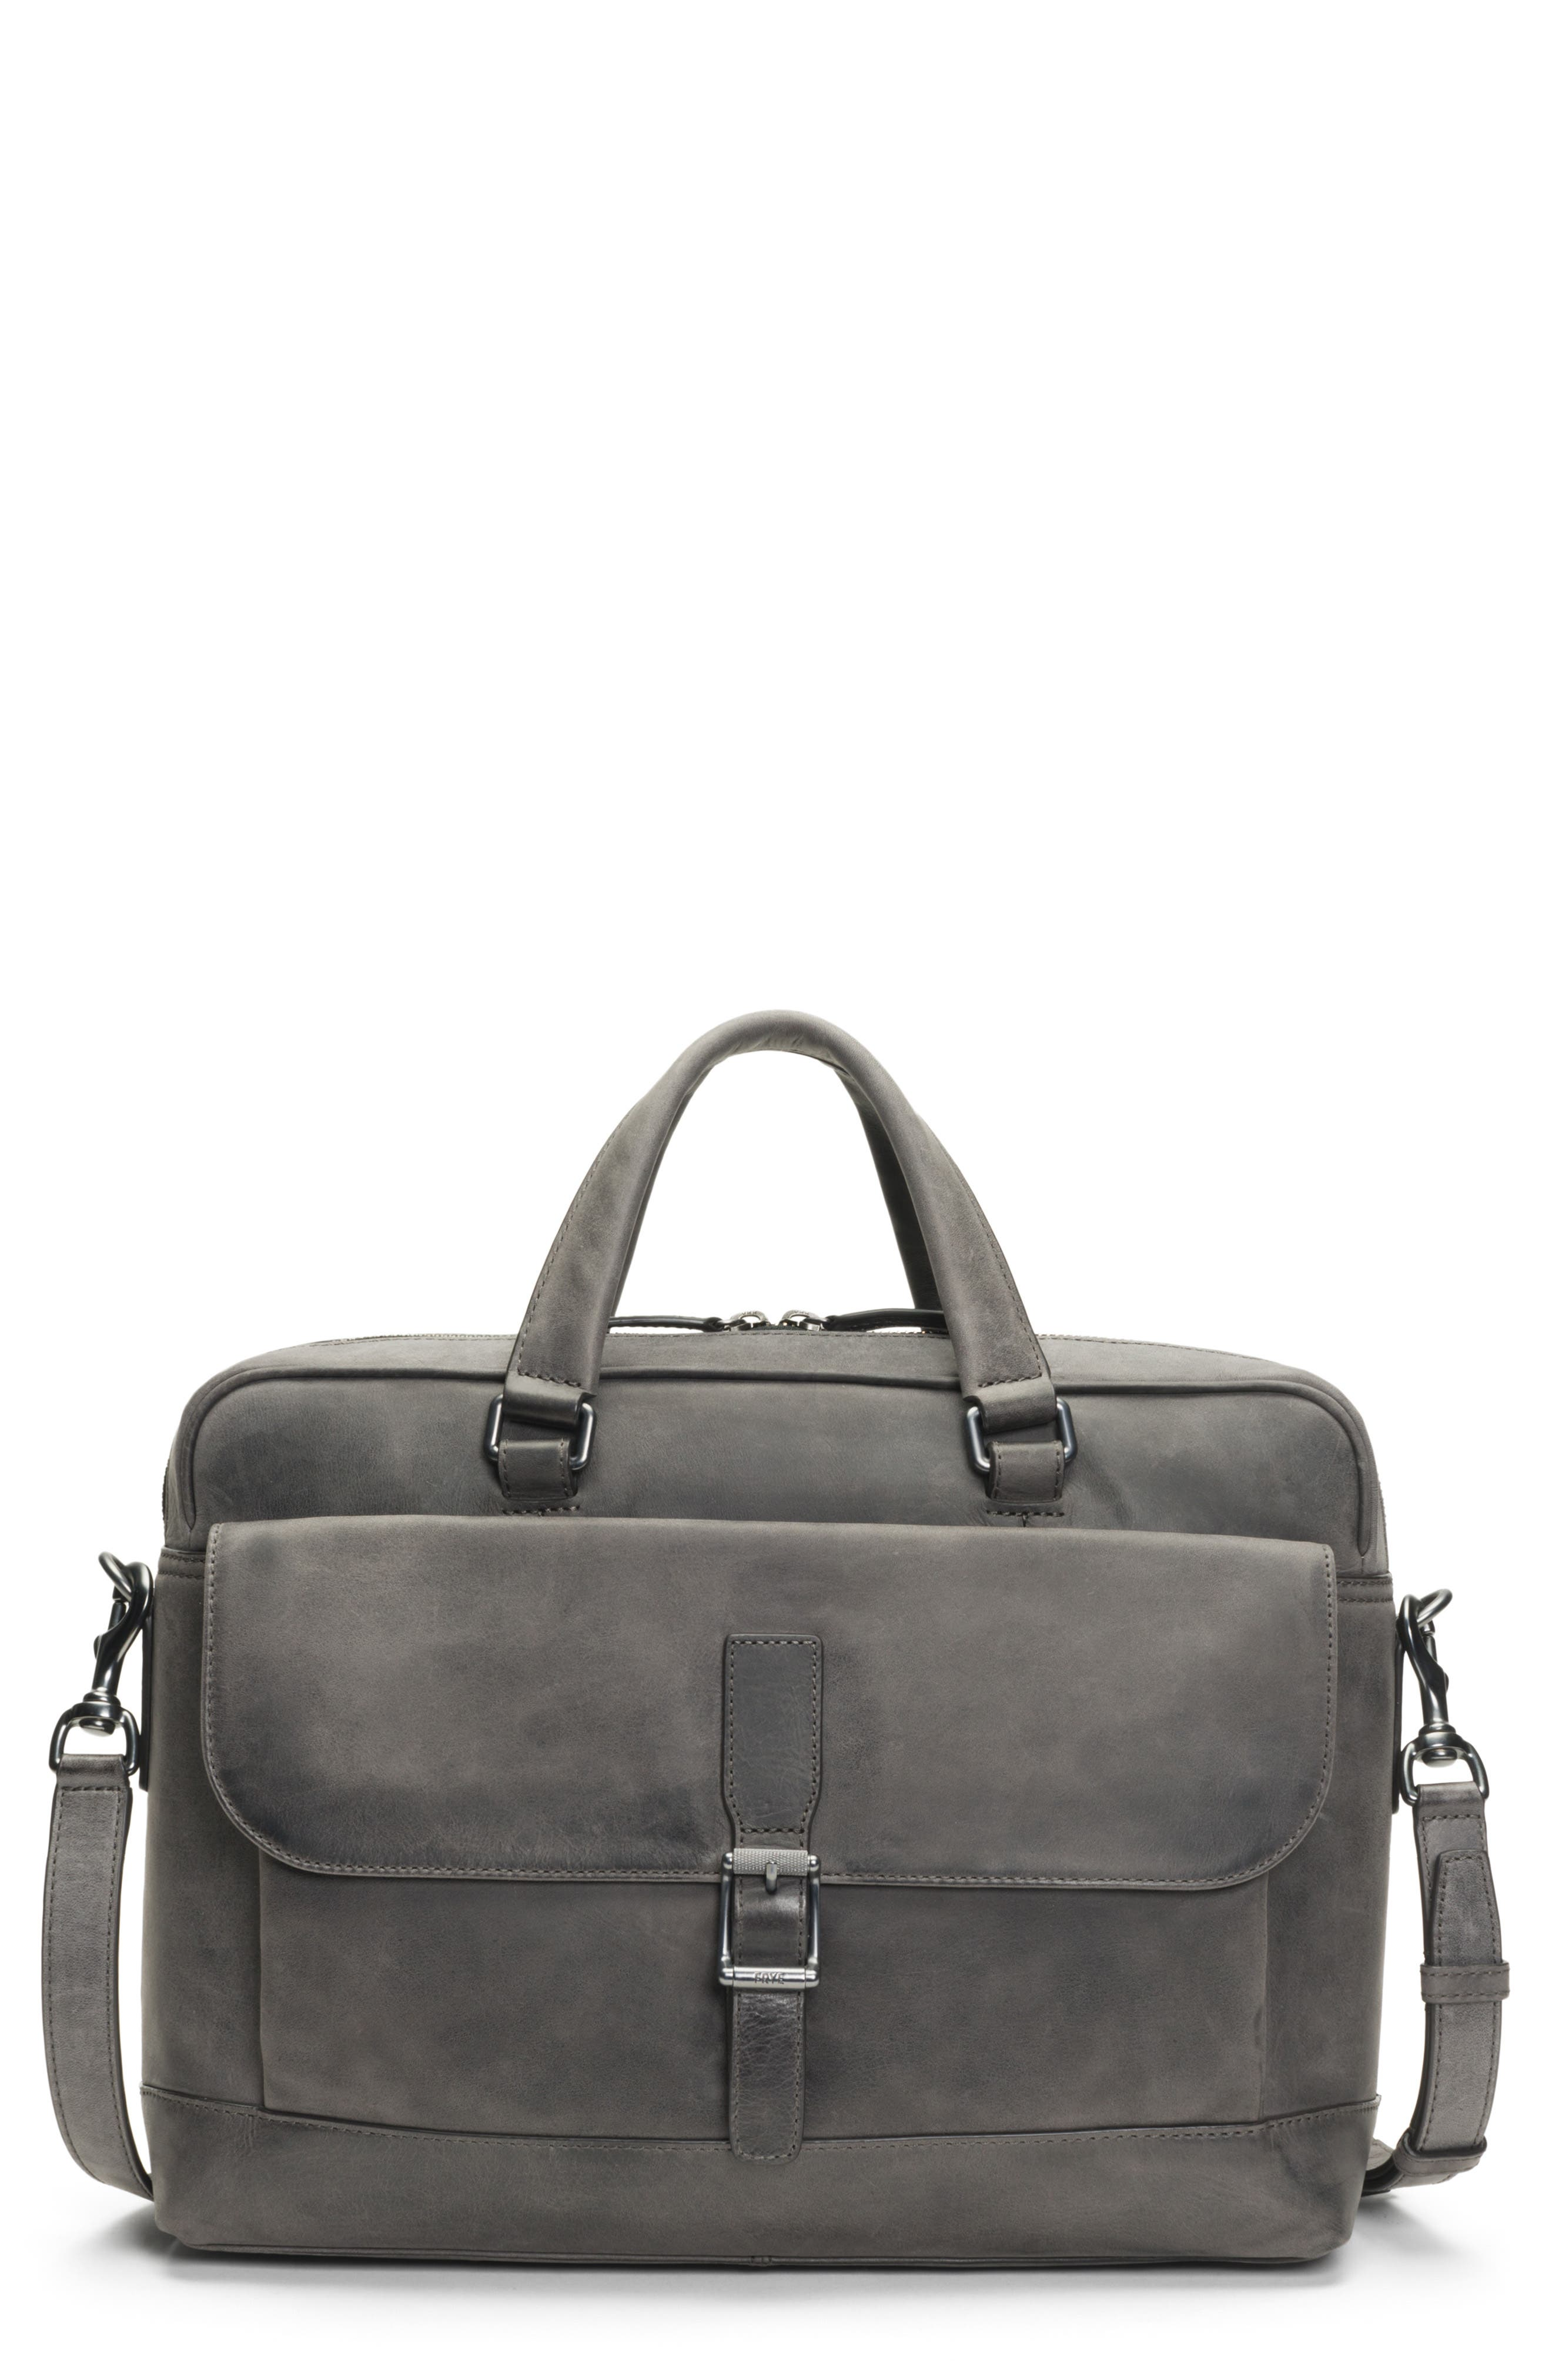 Oliver Leather Briefcase,                             Main thumbnail 1, color,                             SLATE